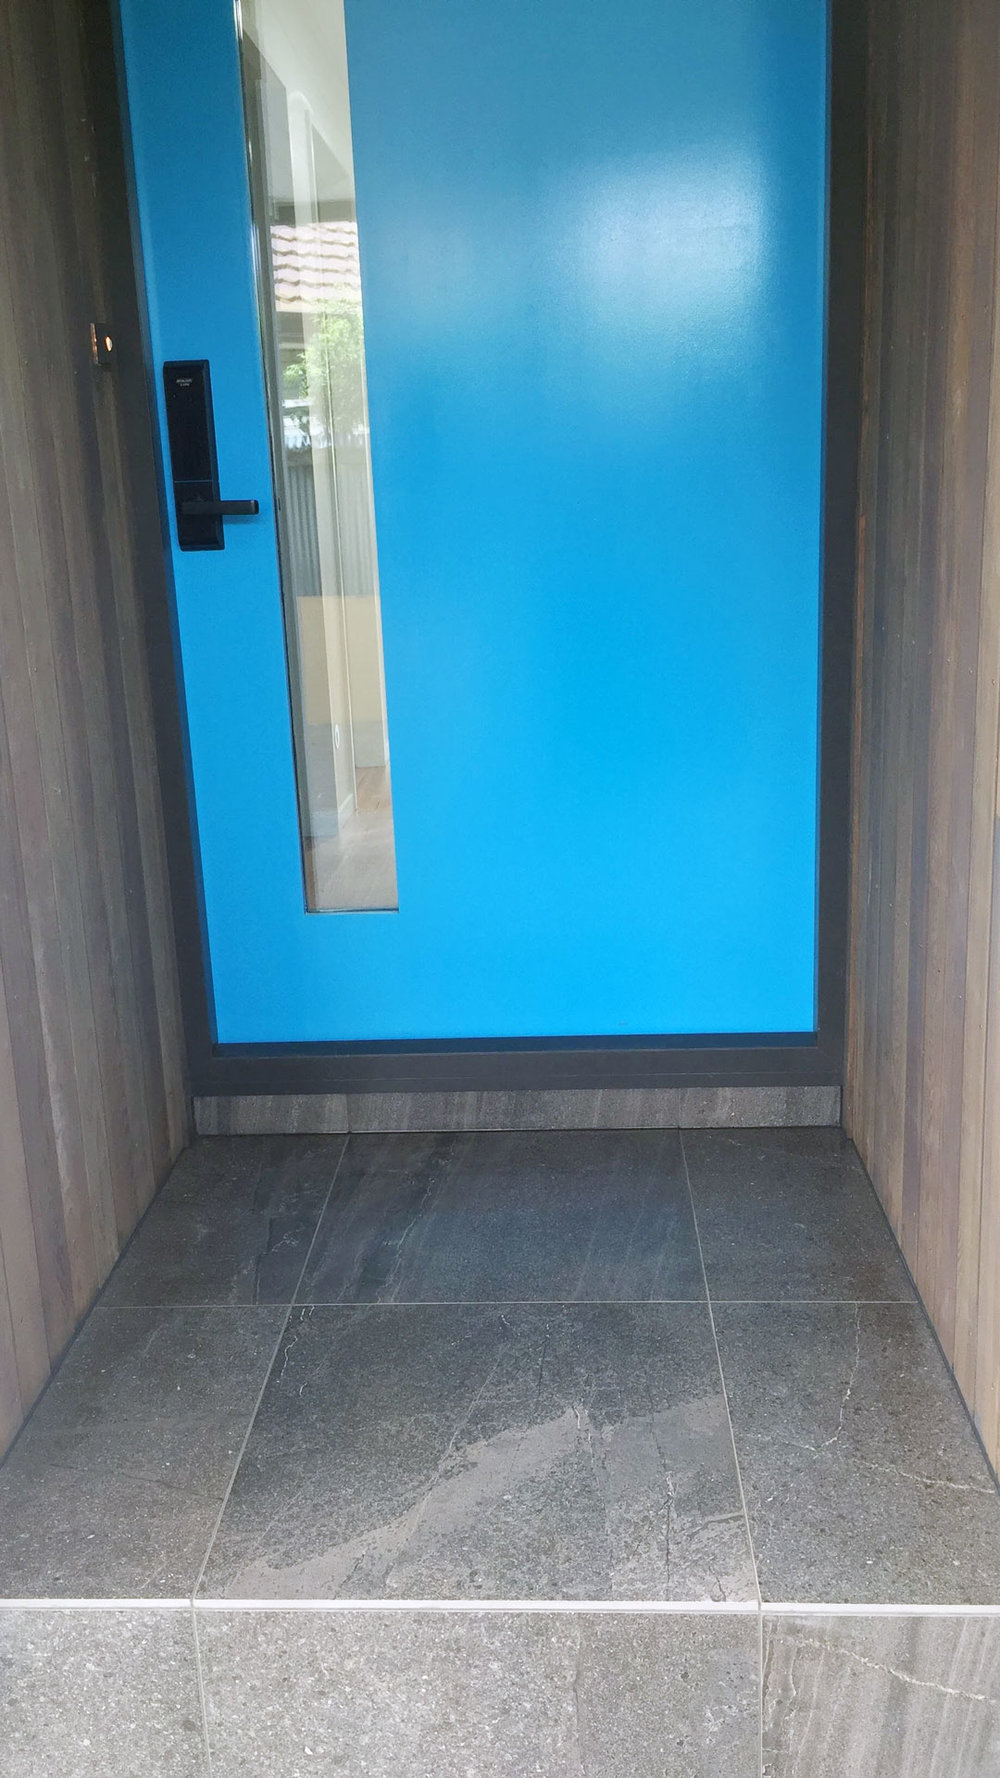 Floor Tiling — Your Complete Commercial and Residential Tiling Service